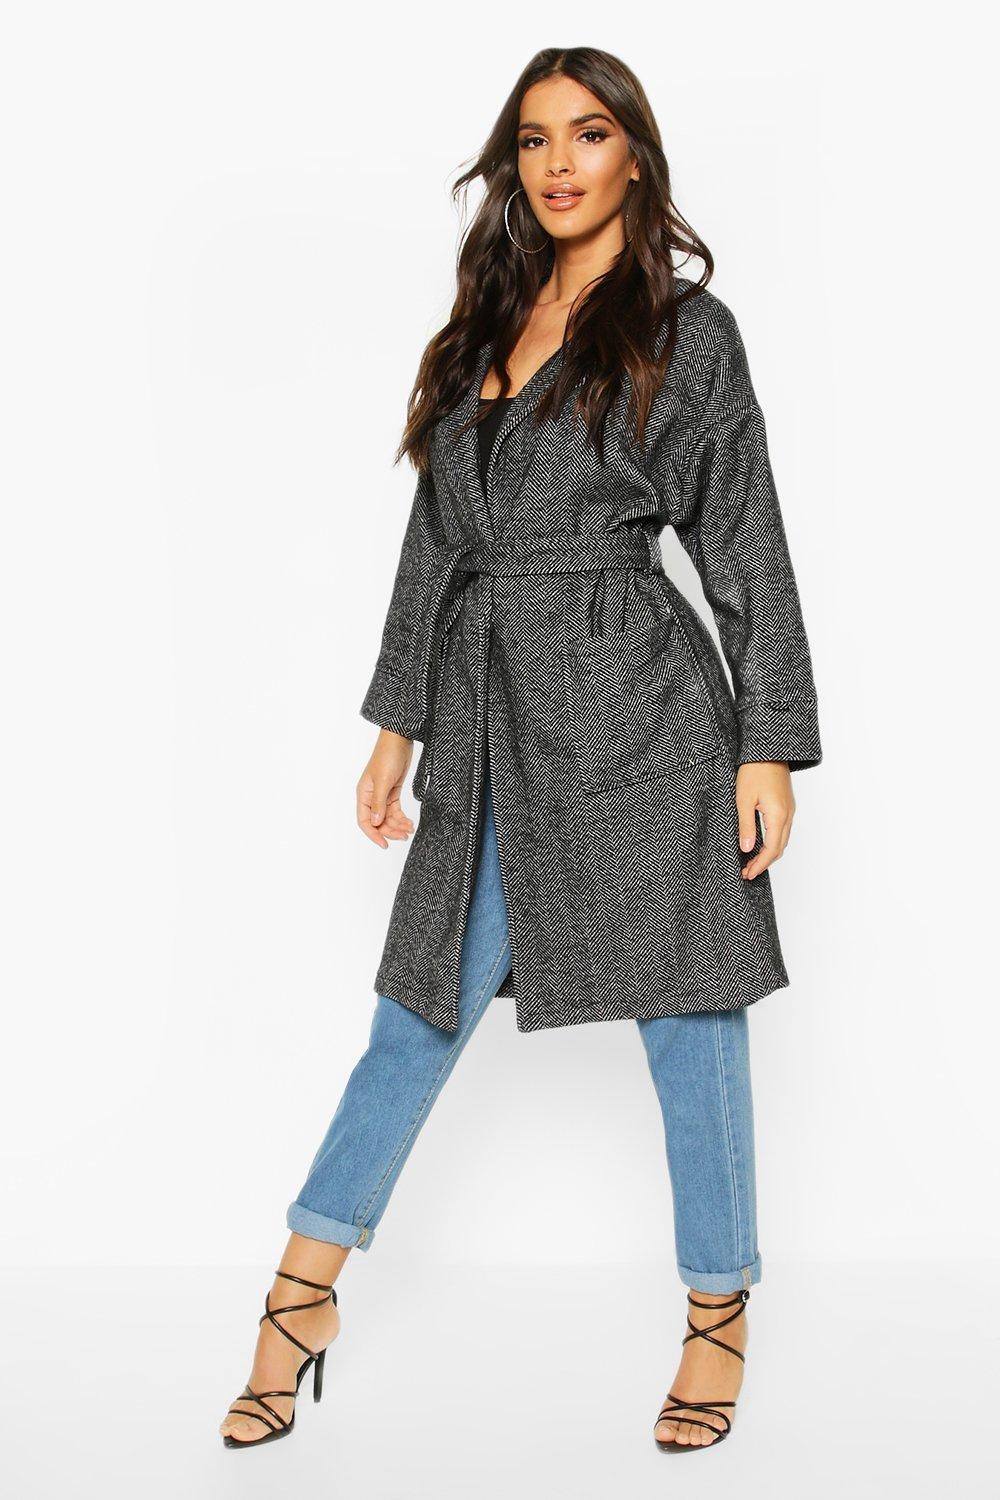 boohoo Womens Herringbone Belted Wool Look Coat - Grey - 14, Grey